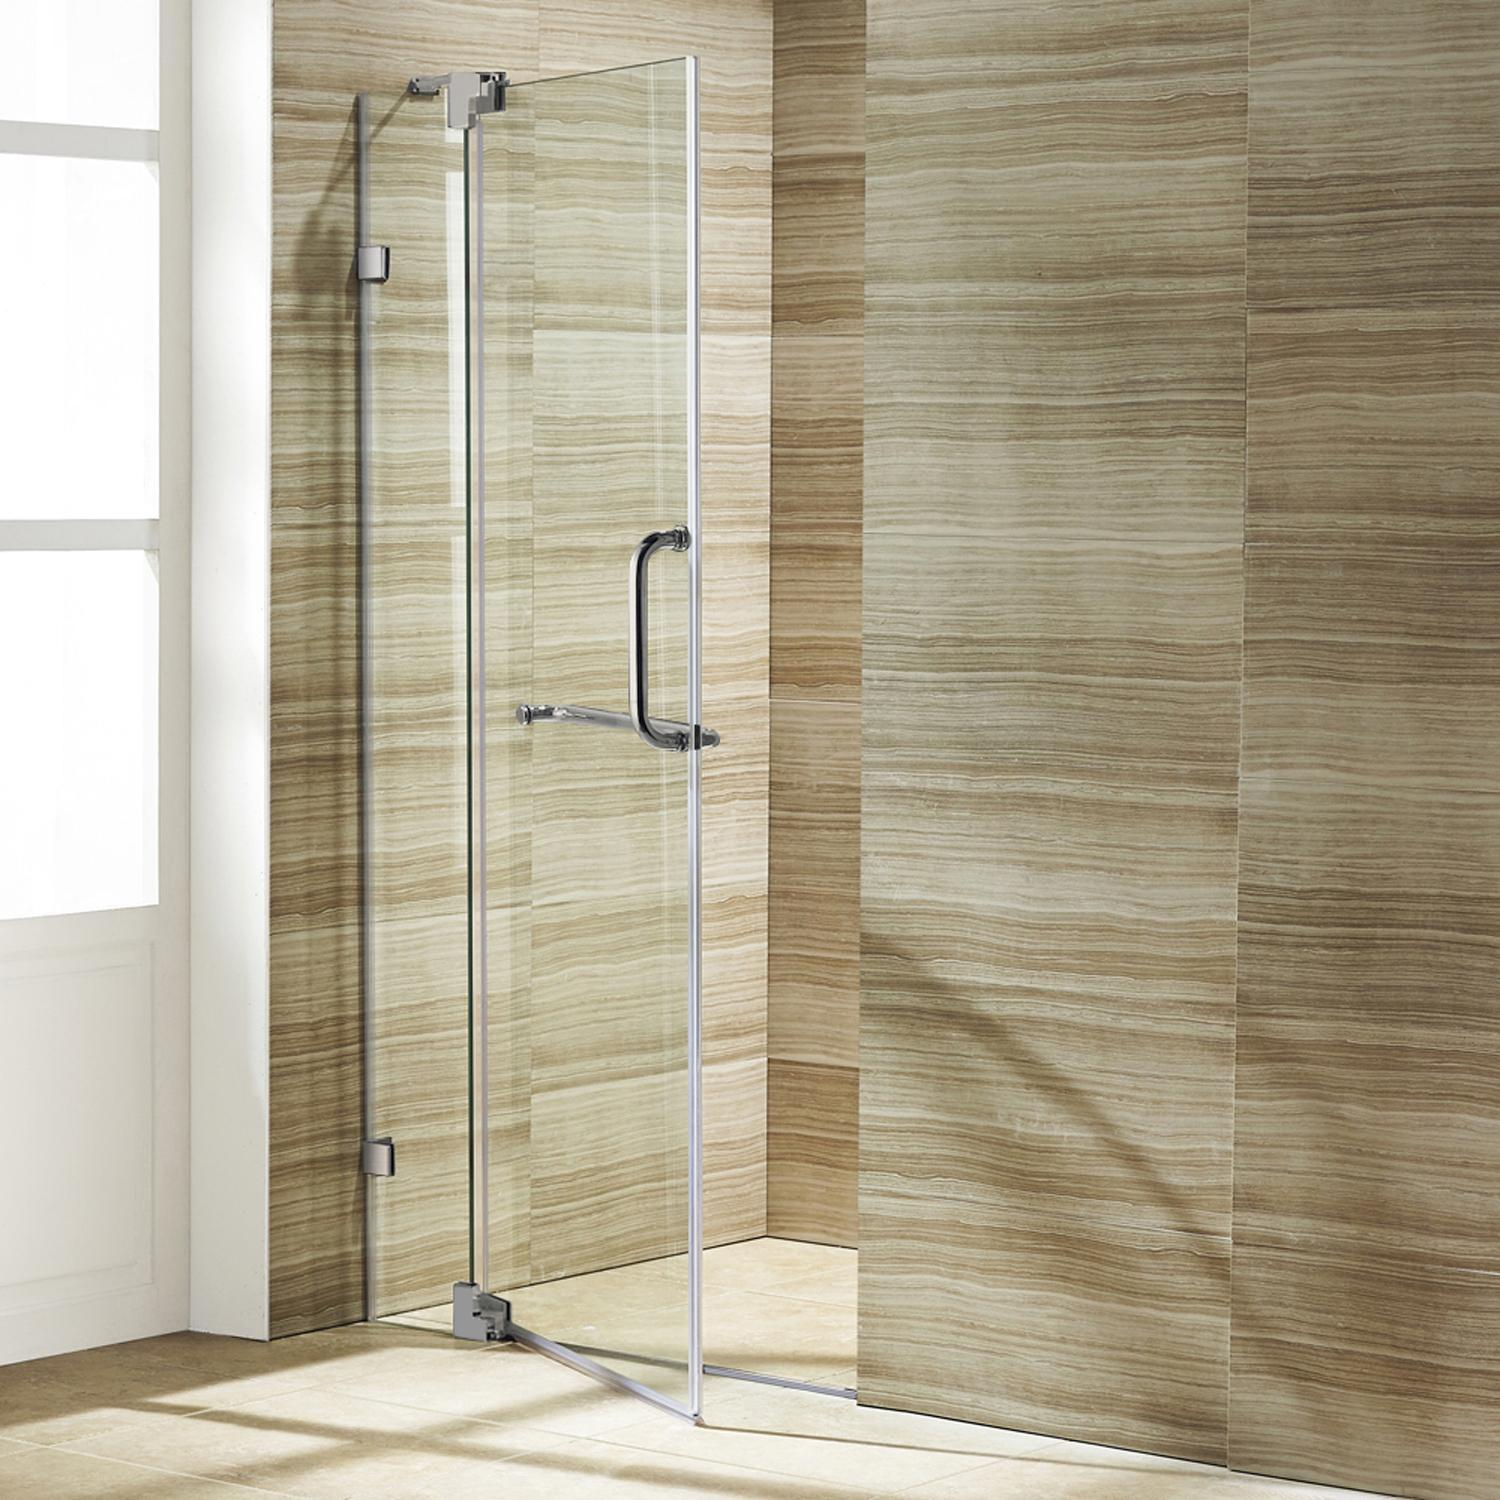 Vigo Offers Unparalleled Water Sealing On All Frameless Shower Doors,